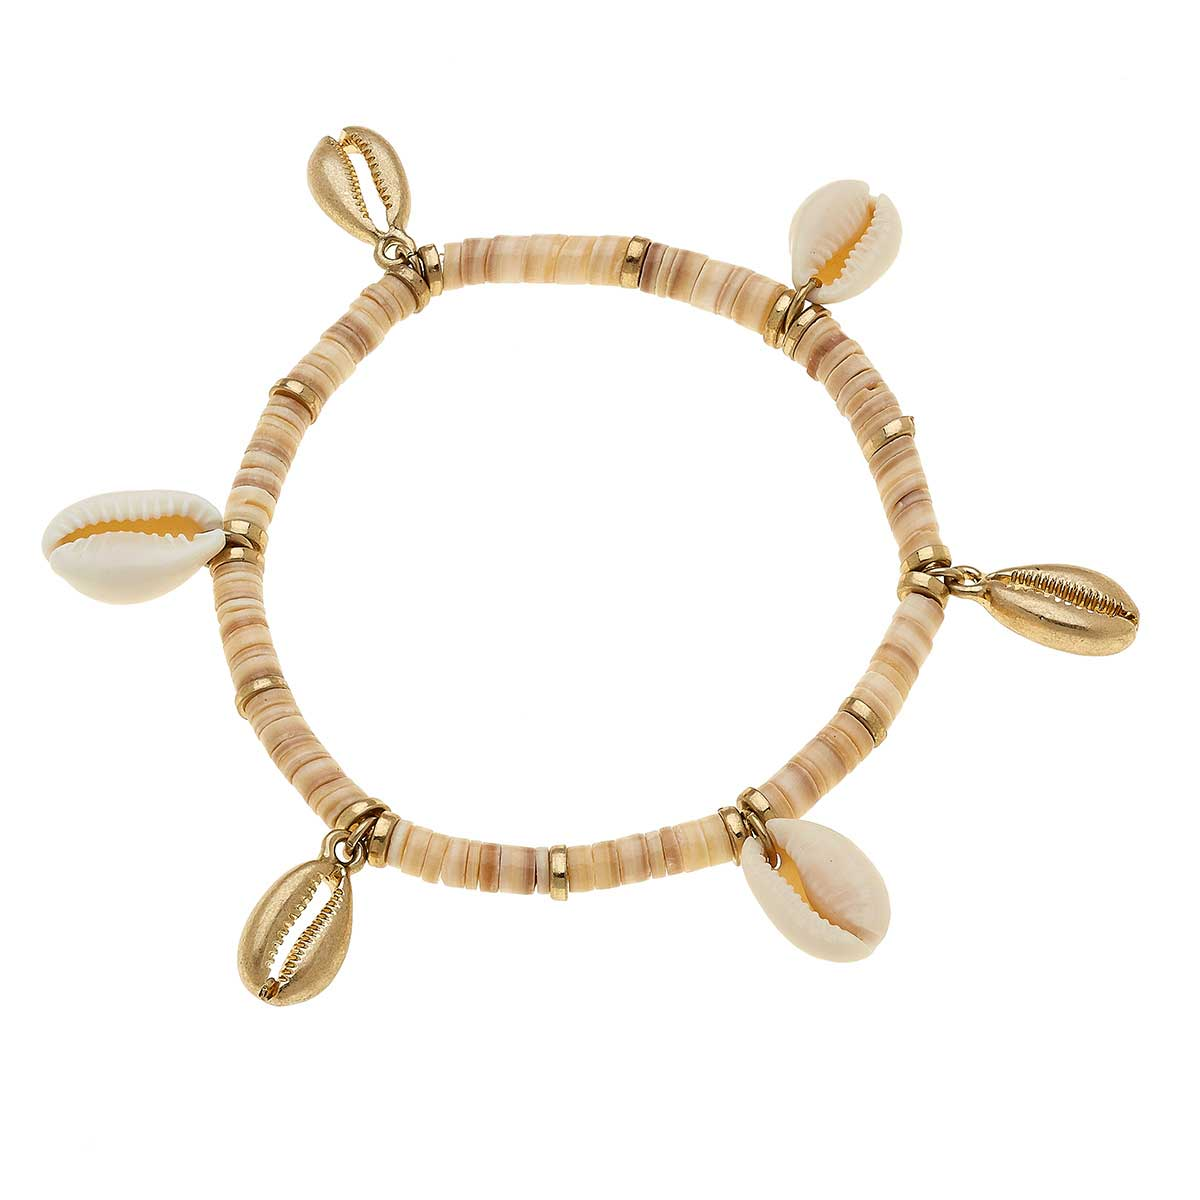 Beachcomber Shell Bracelet in Neutral